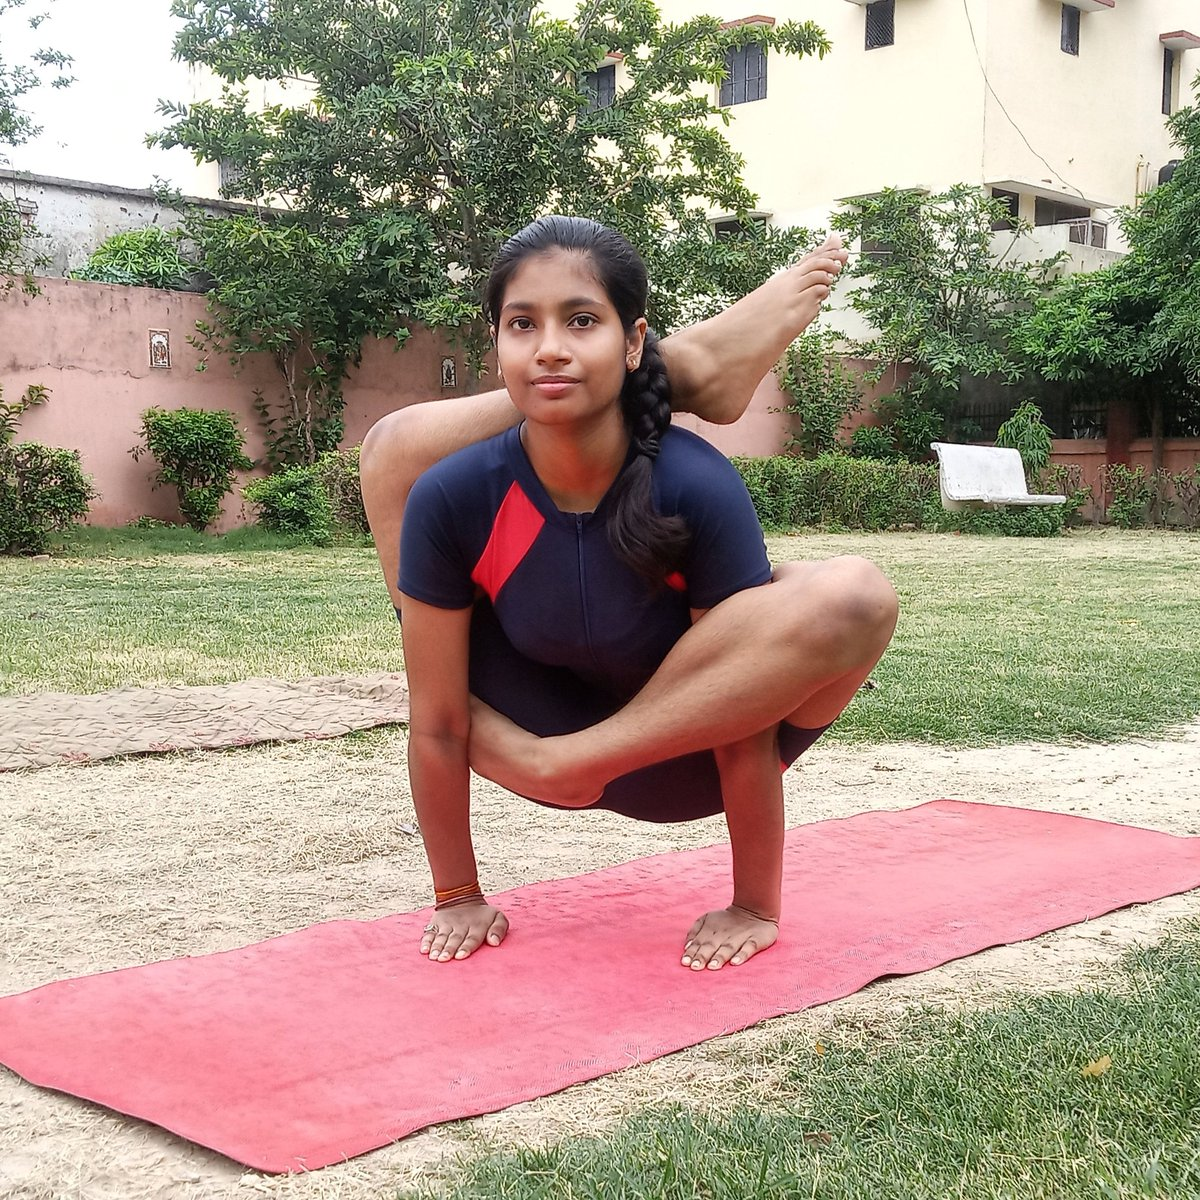 """""""Yoga is not a religion. It is a science, science of well-being, science of youthfulness, science of integrating body, mind, and soul.""""  #Yogic_Practises #Yogi #yoga #yogaforall #yogagirl #yogalife #yogaduringlockdown #yogiclifestyle #yogicsciencepic.twitter.com/n4DS8QEZd3"""